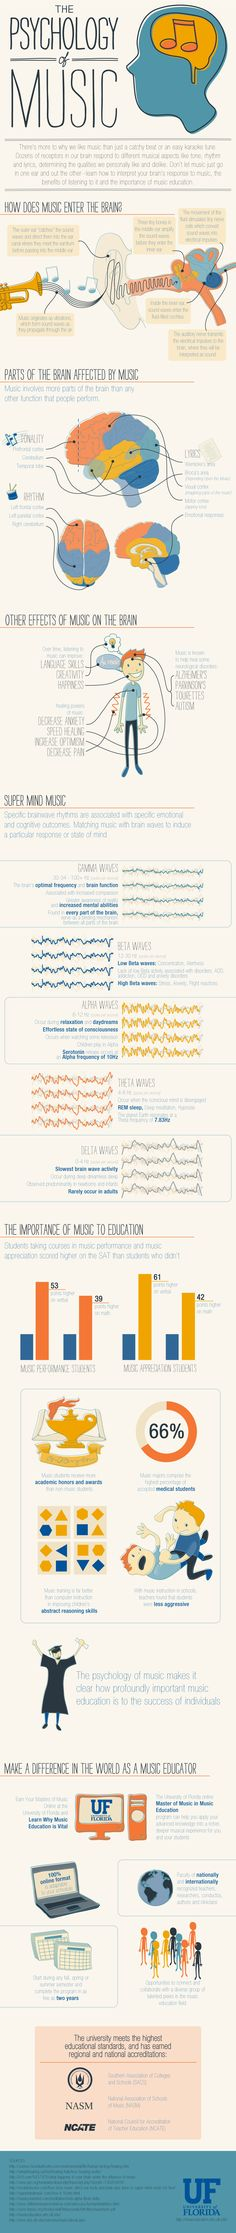 The Psychology Of Music [#Infographic]